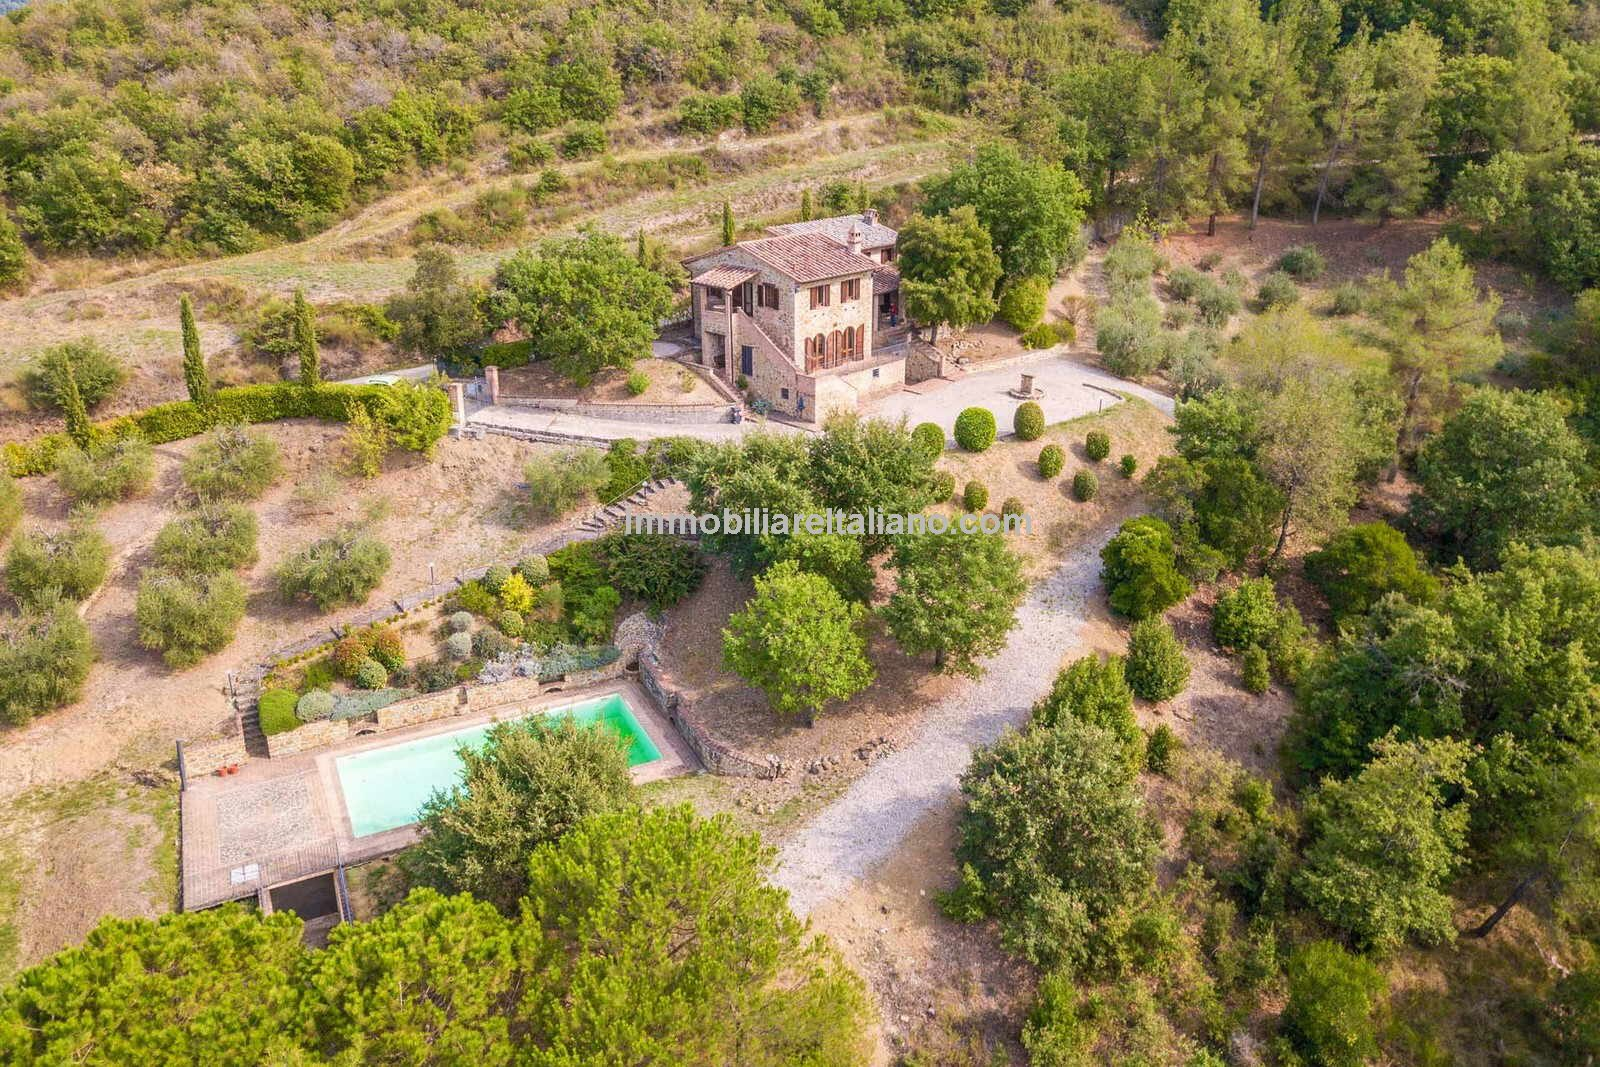 Home for sale near the Tuscan Umbria border